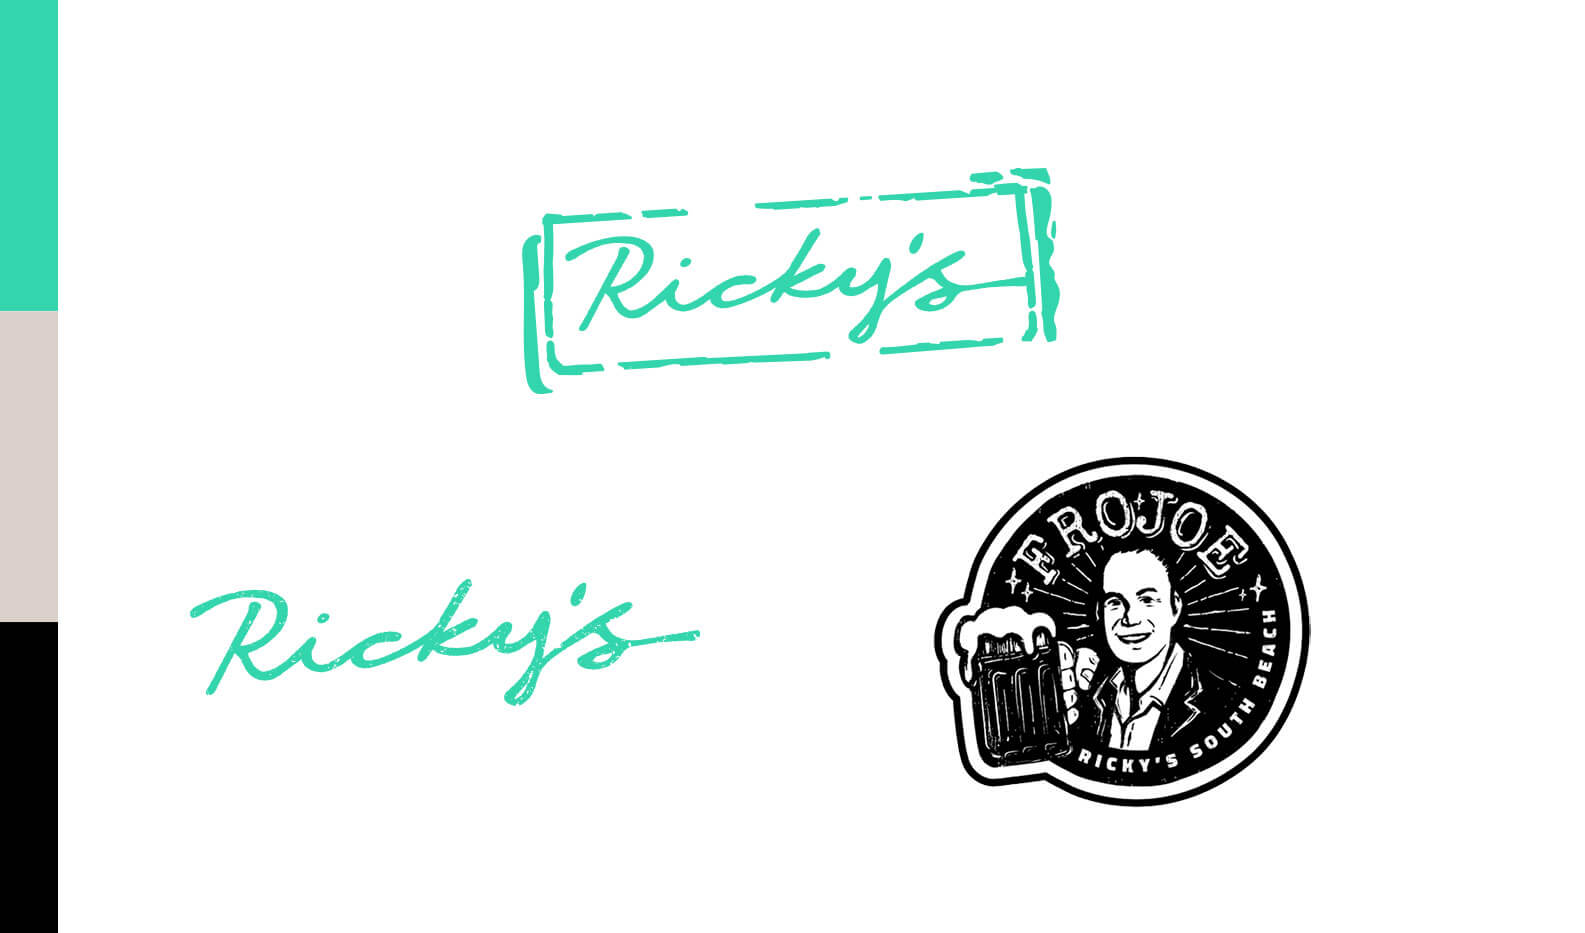 Ricky's logo and branding by Jacober Creative